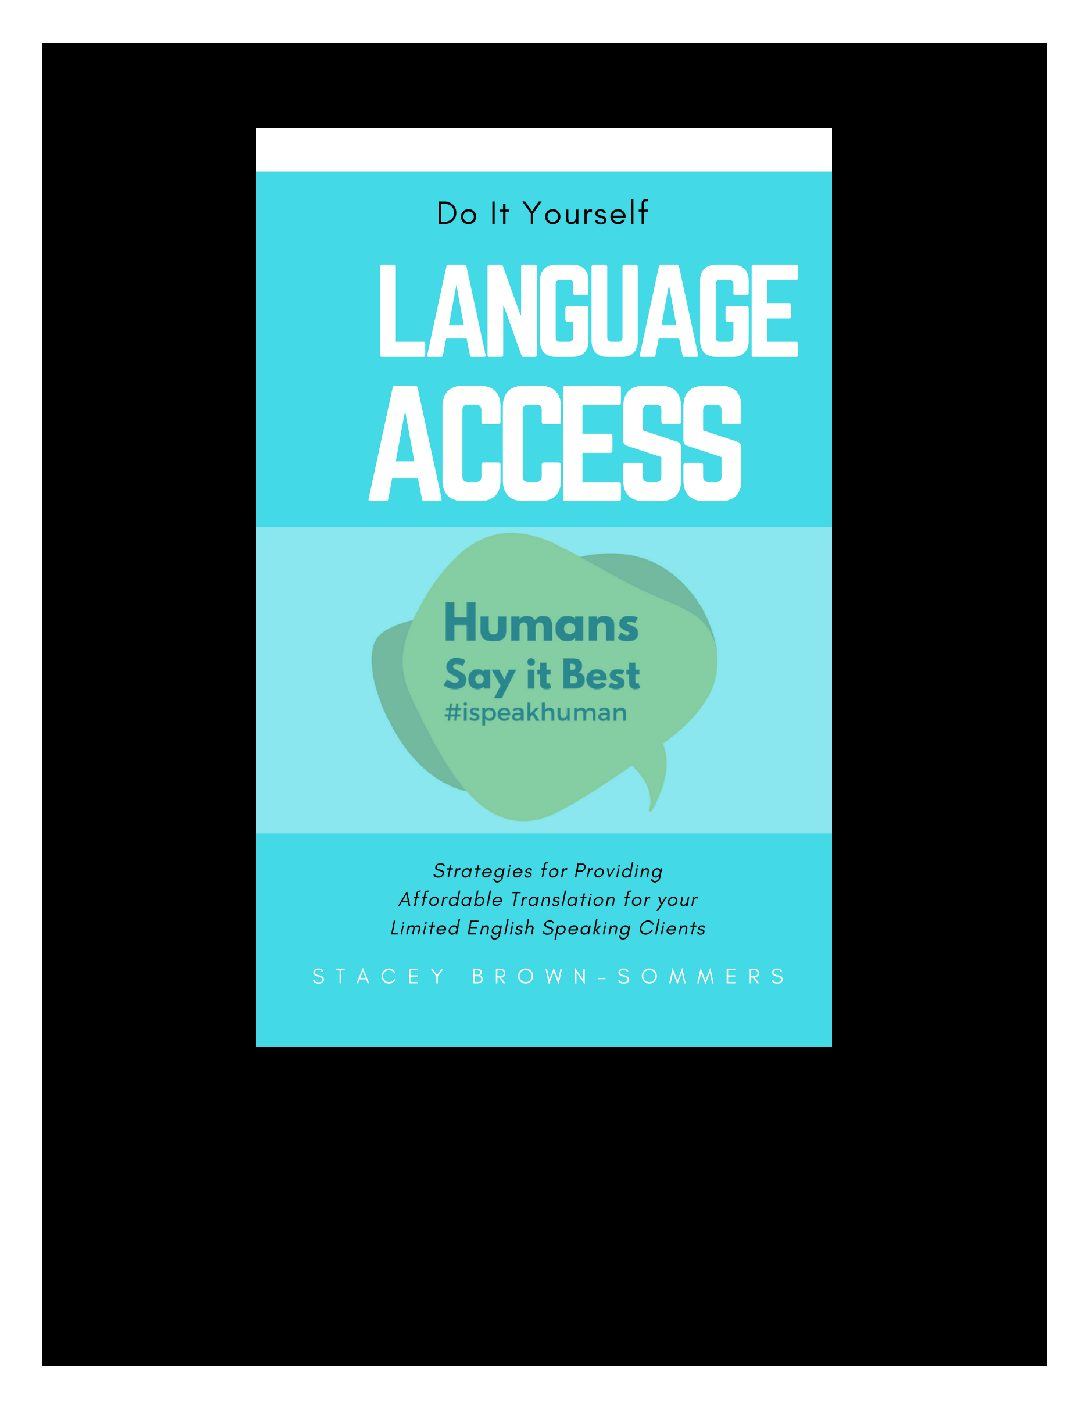 Do it Yourself Language Access